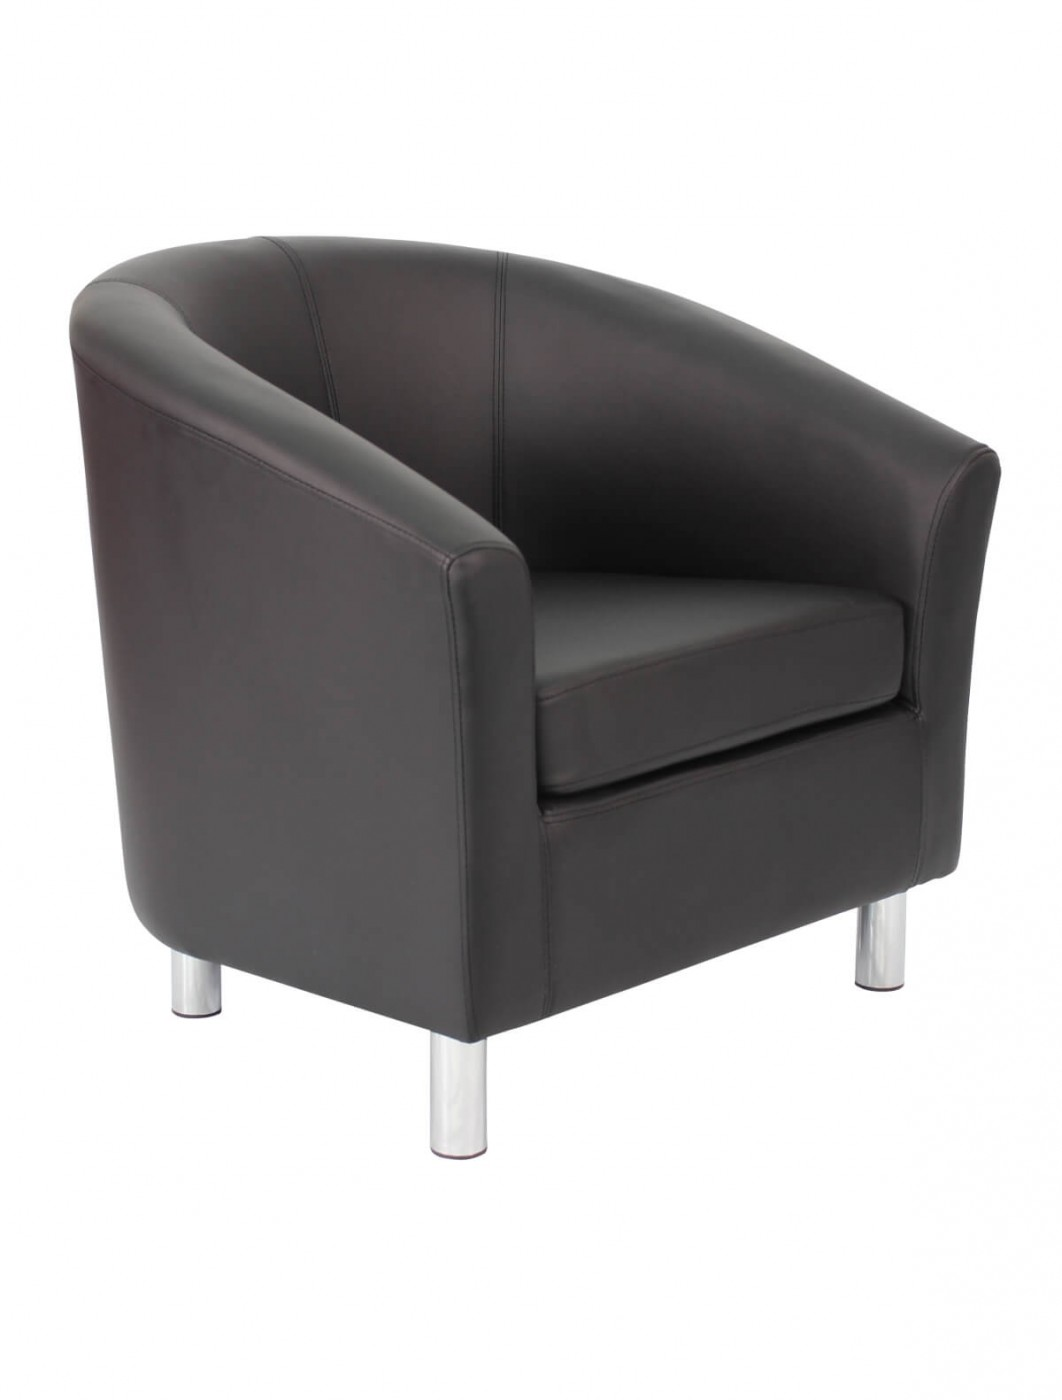 Armchair - PU Leather Tub Chair OF2201ML Reception Chairs - enlarged view